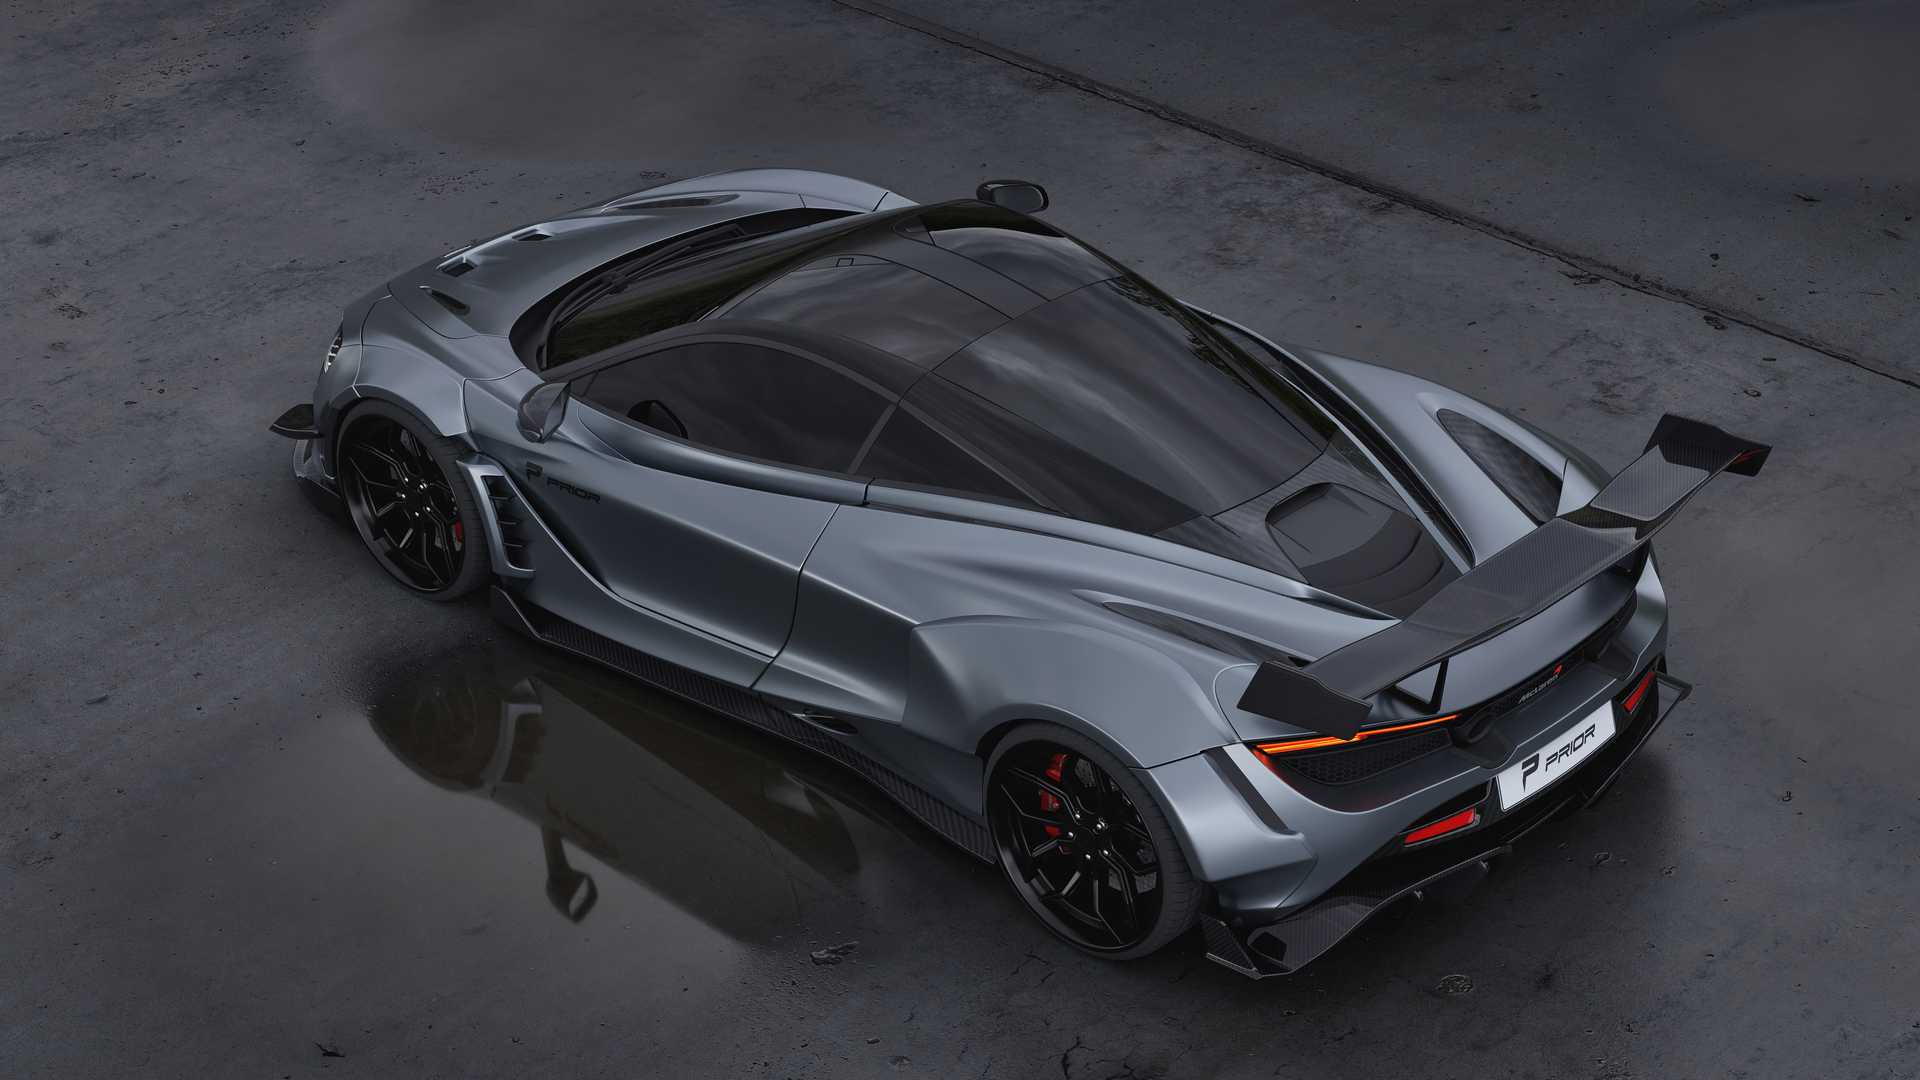 mclaren-720s-by-prior-design-1